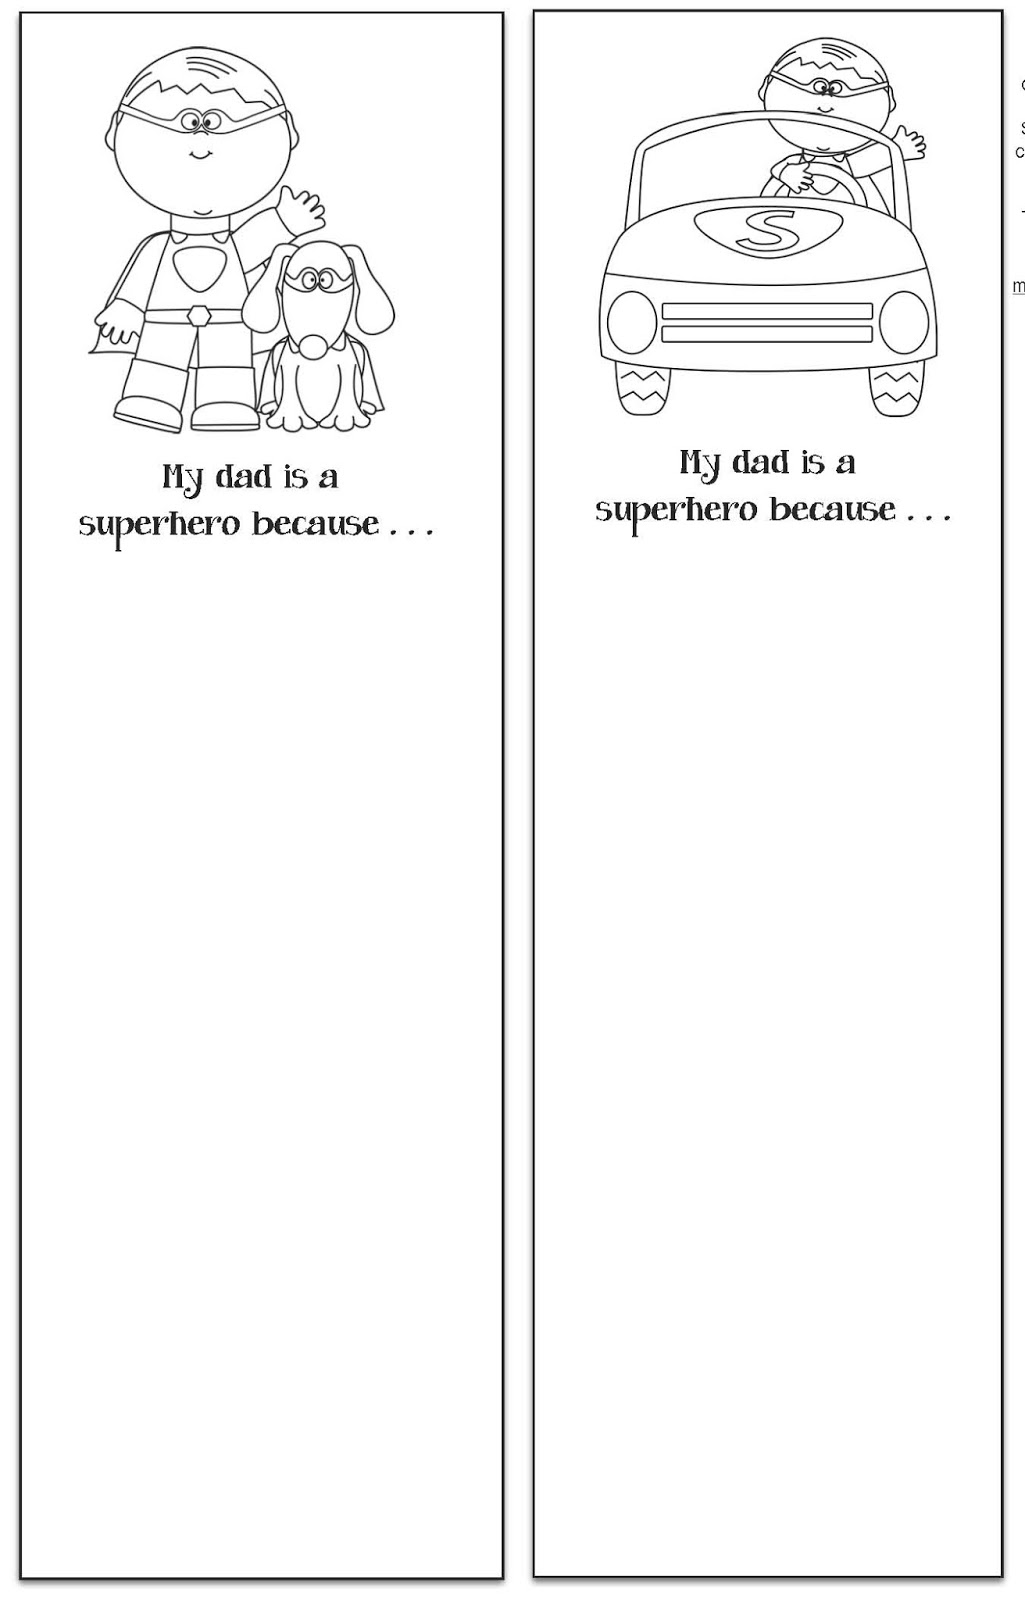 worksheet Dads Worksheet all grade worksheets dads classroom freebies my a superhero writing prompt